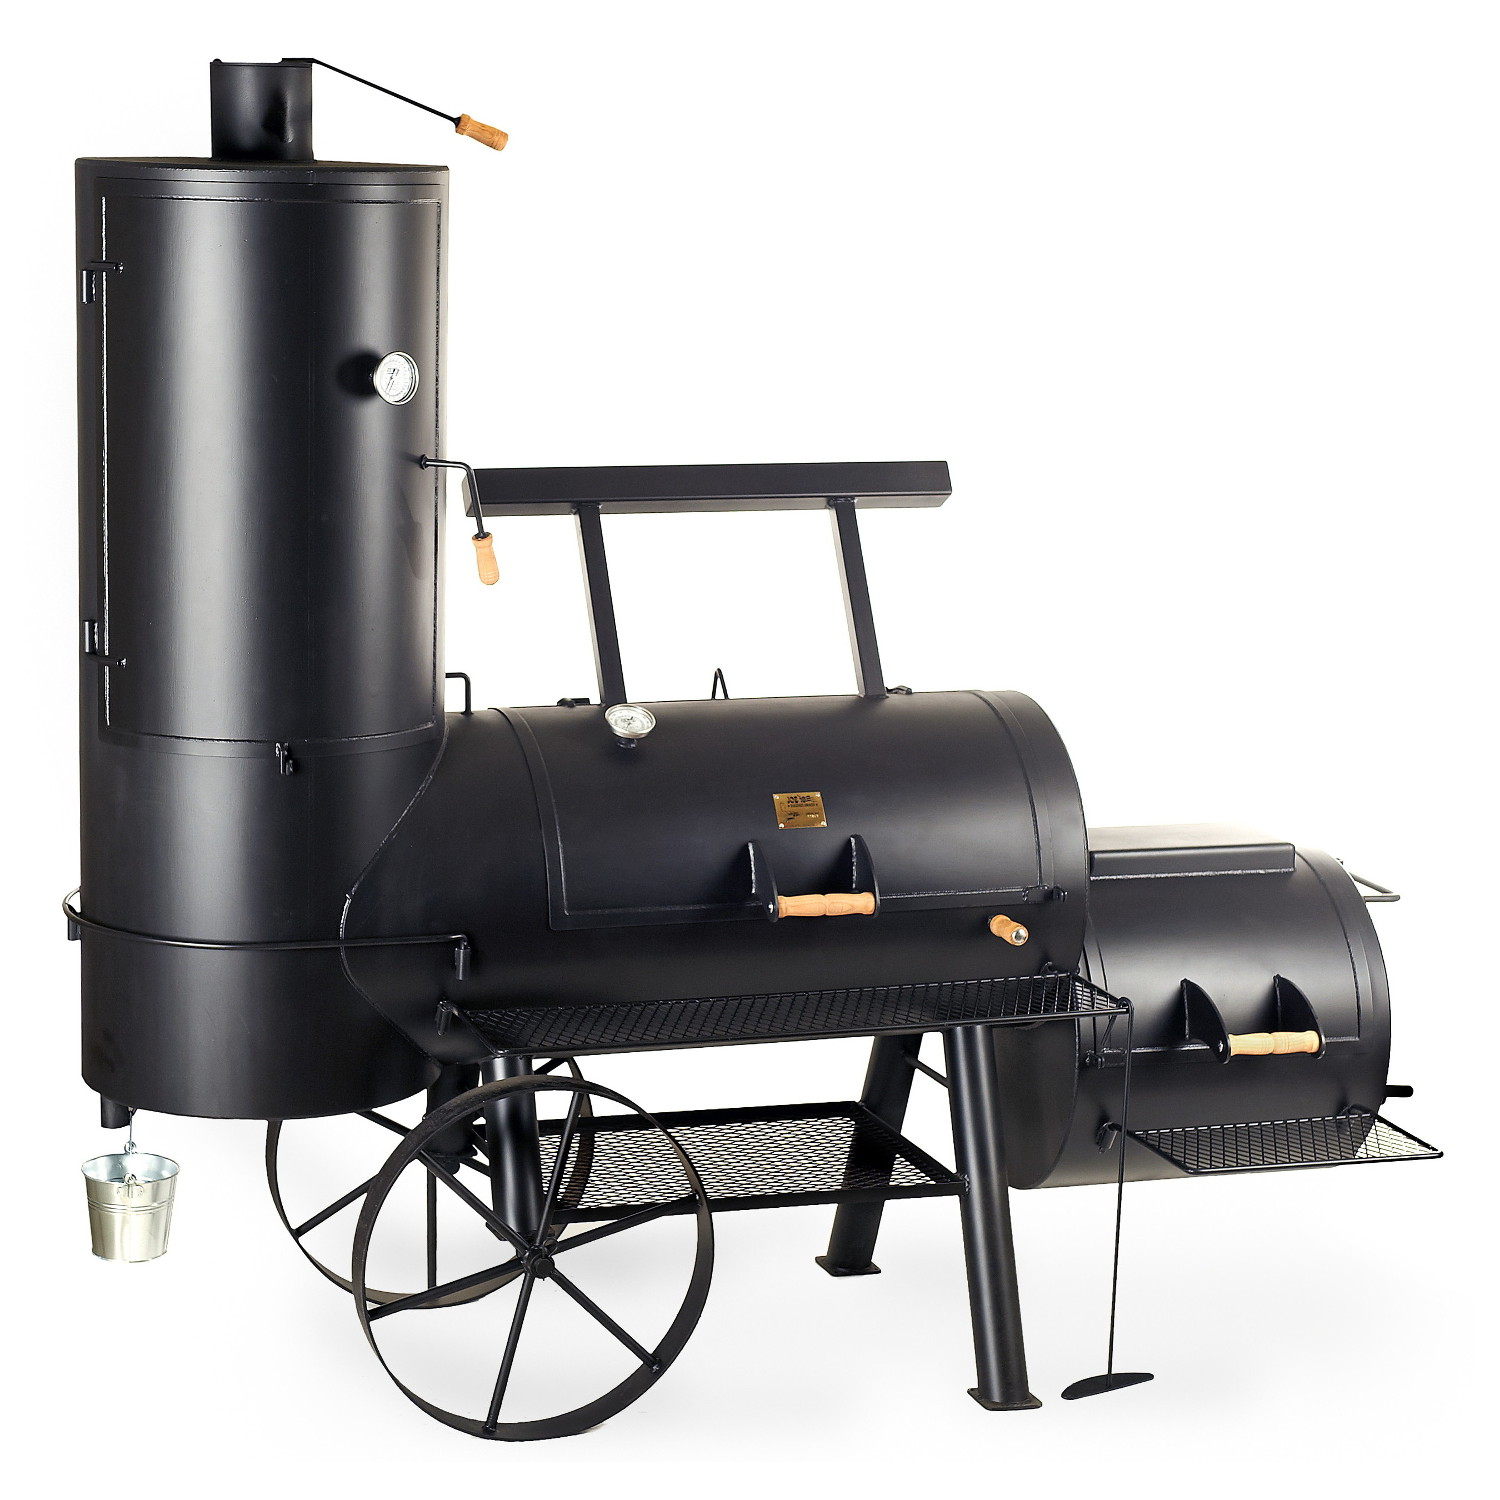 joe 39 s bbq smoker 24 chuckwagon catering lieferzeit anfragen online kaufen grilljack ch. Black Bedroom Furniture Sets. Home Design Ideas